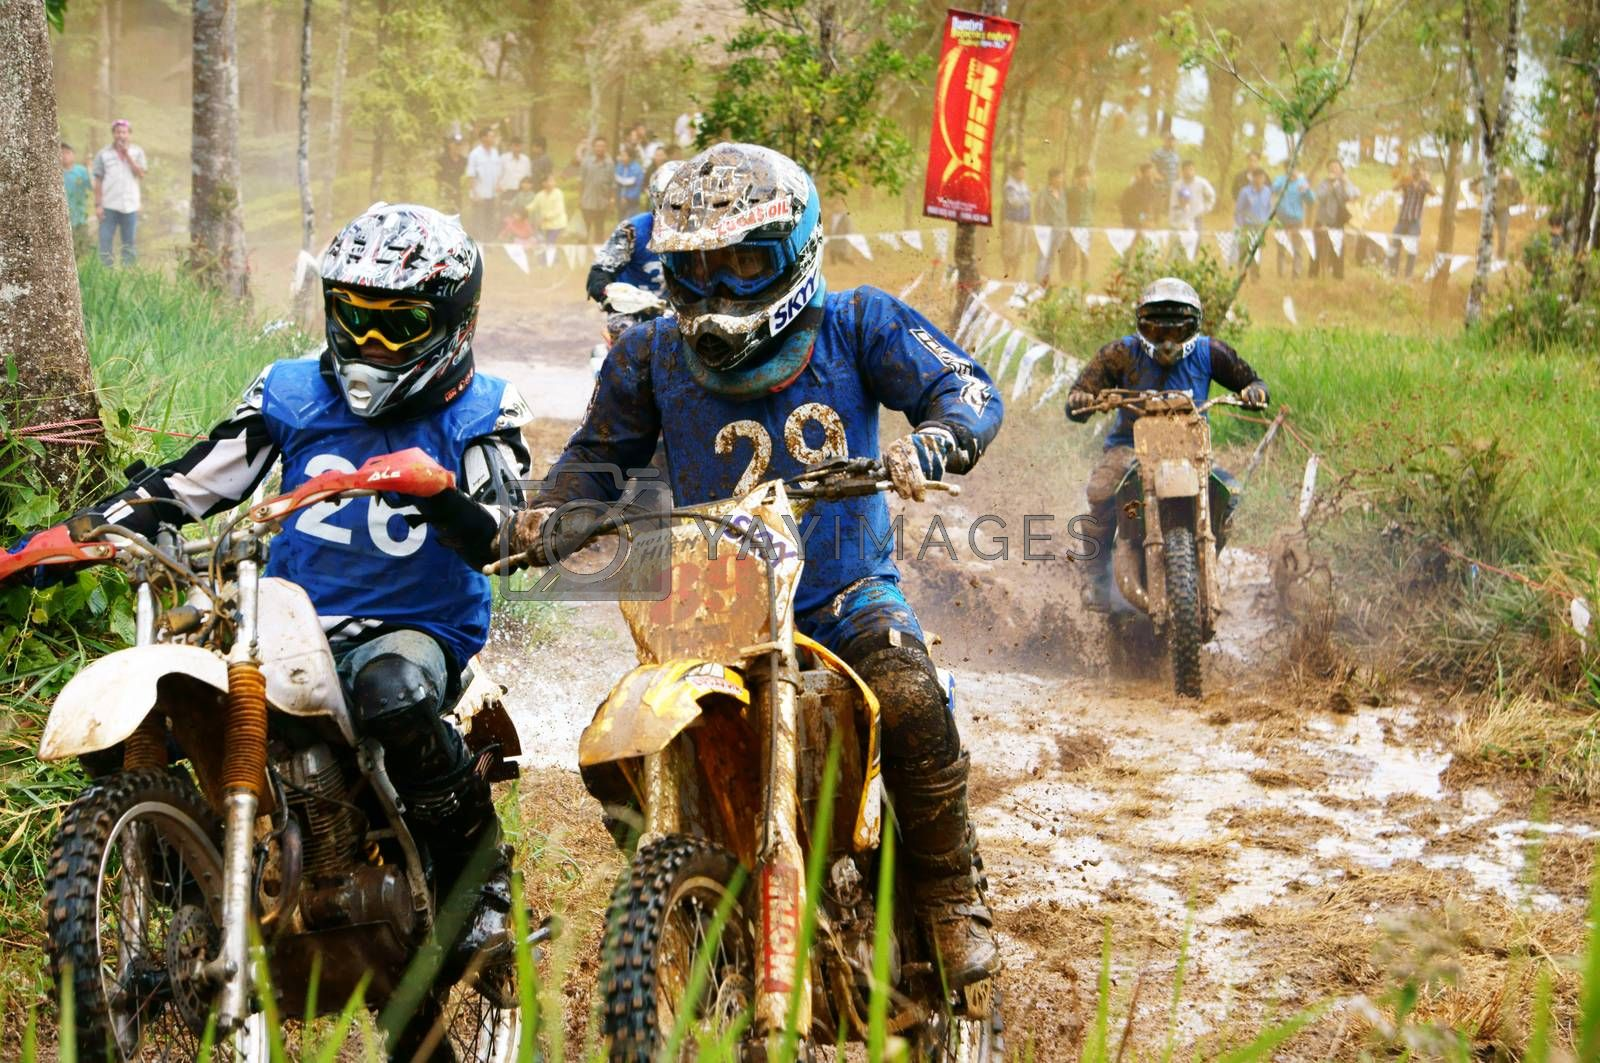 BAO LOC, VIET NAM- DECEMBER 23 Racer in activity at motorcycle race hole on Bao Loc, Viet Nam, they try to across a marshy stretch of road with violent competition in December 23, 2012